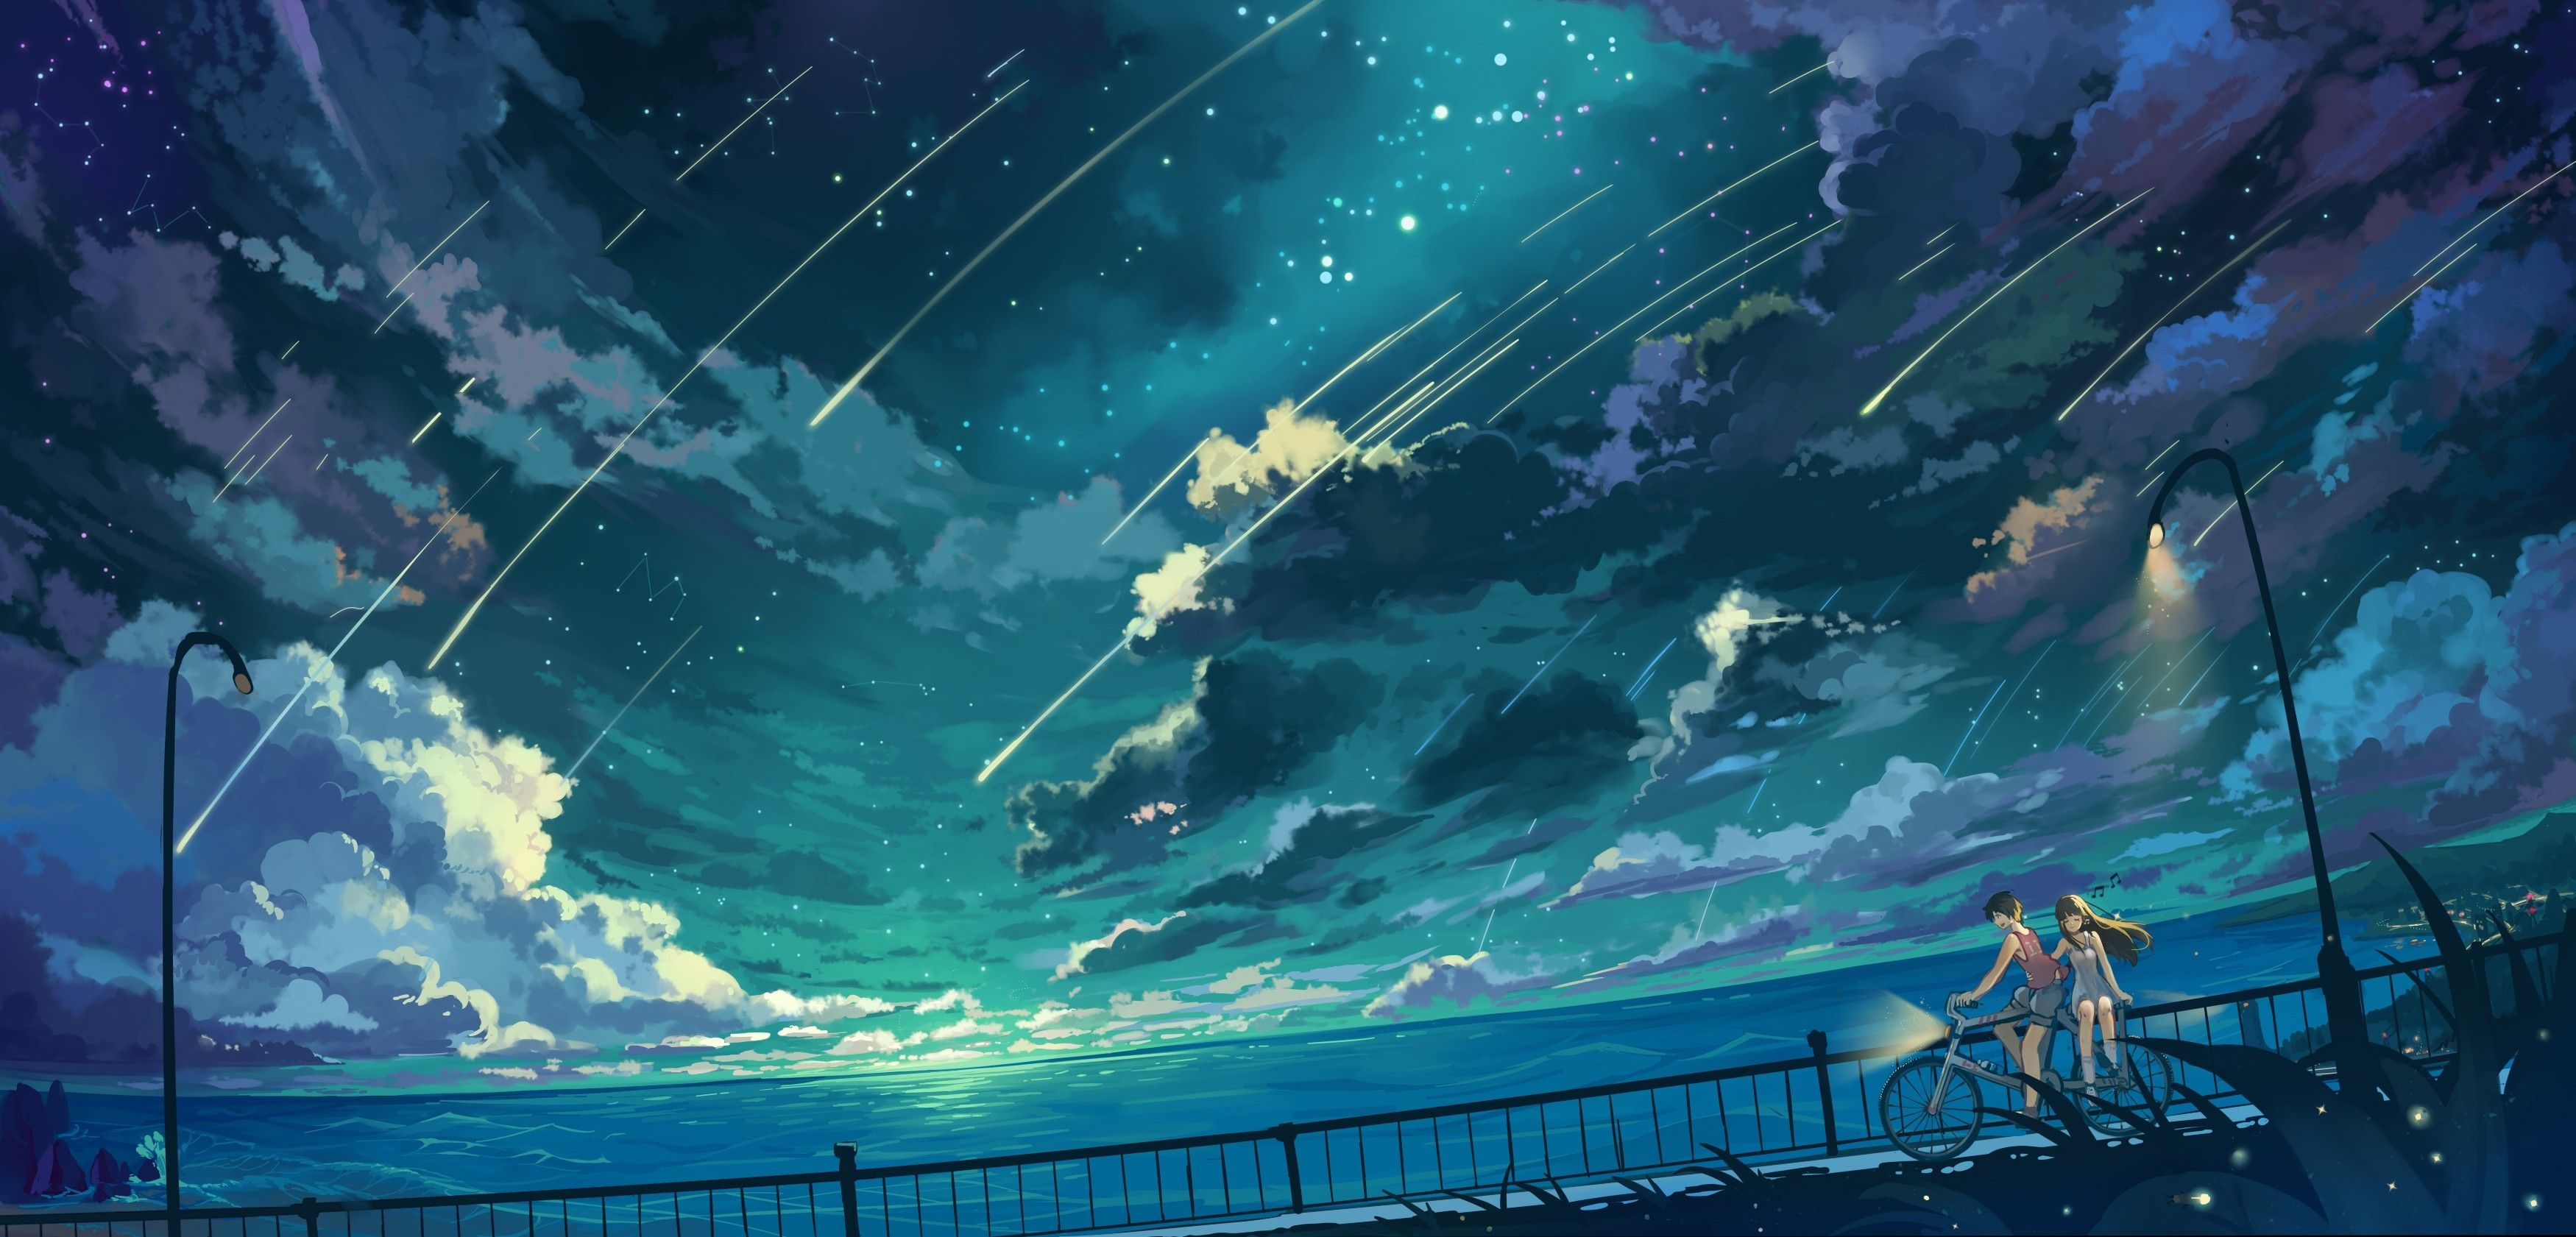 Res 3500x1681 Hd Wallpaper Background Image Id 596630 Anime Original Anime Scenery Scenery Wallpaper Anime Background